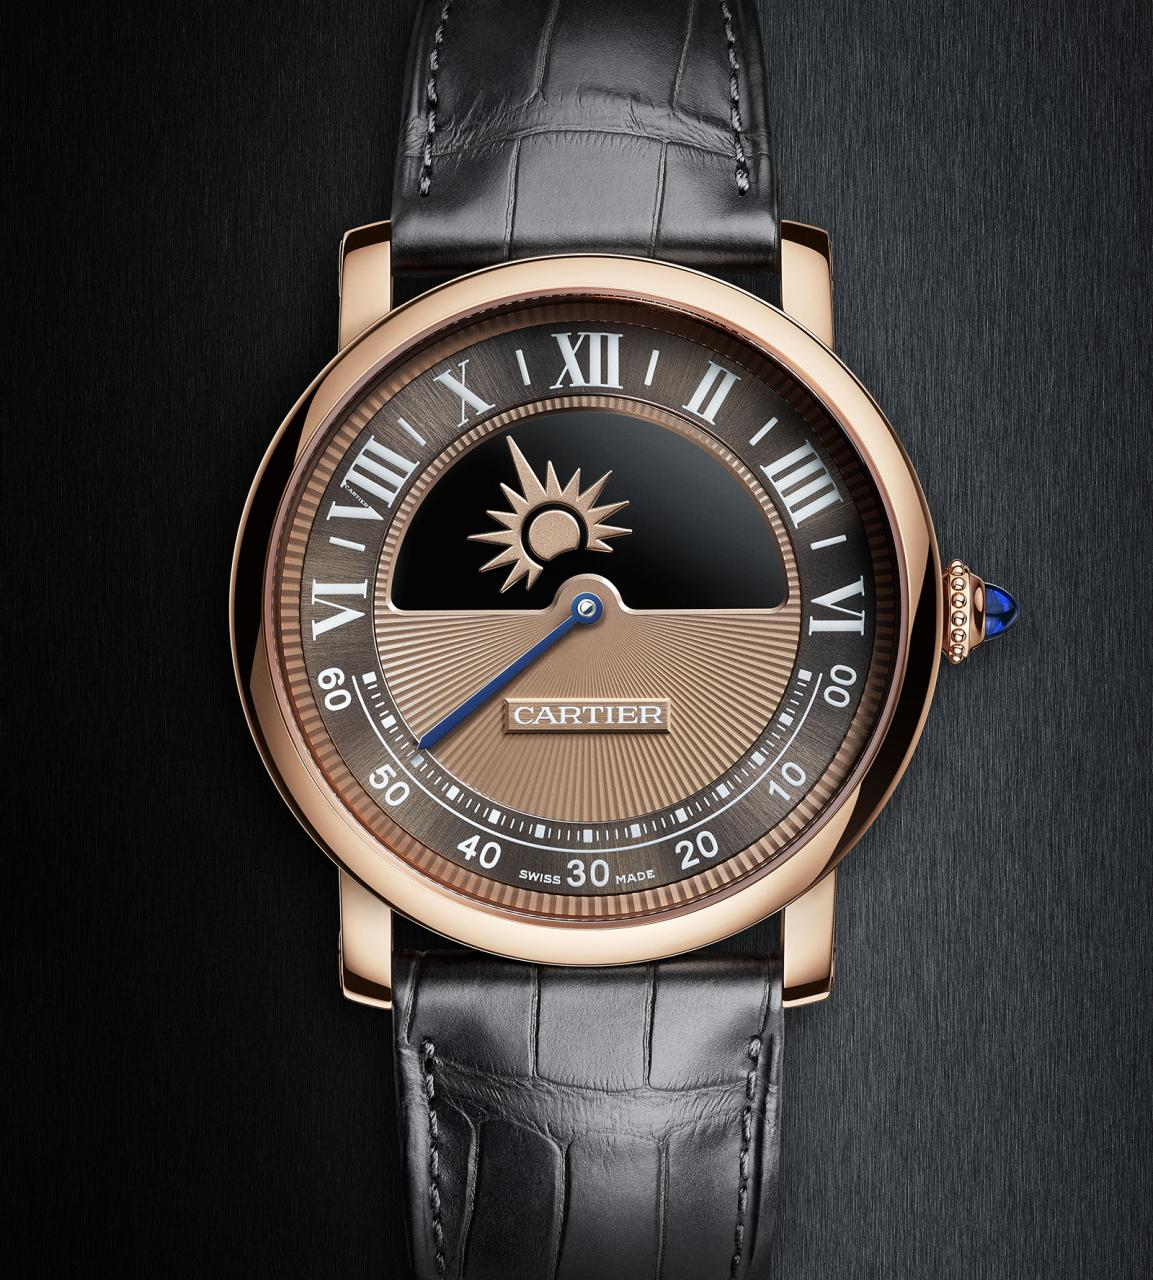 CARTIER_SIHH 2018 ROTONDE_MYSTERIOUS_DAY_AND_NIGHT